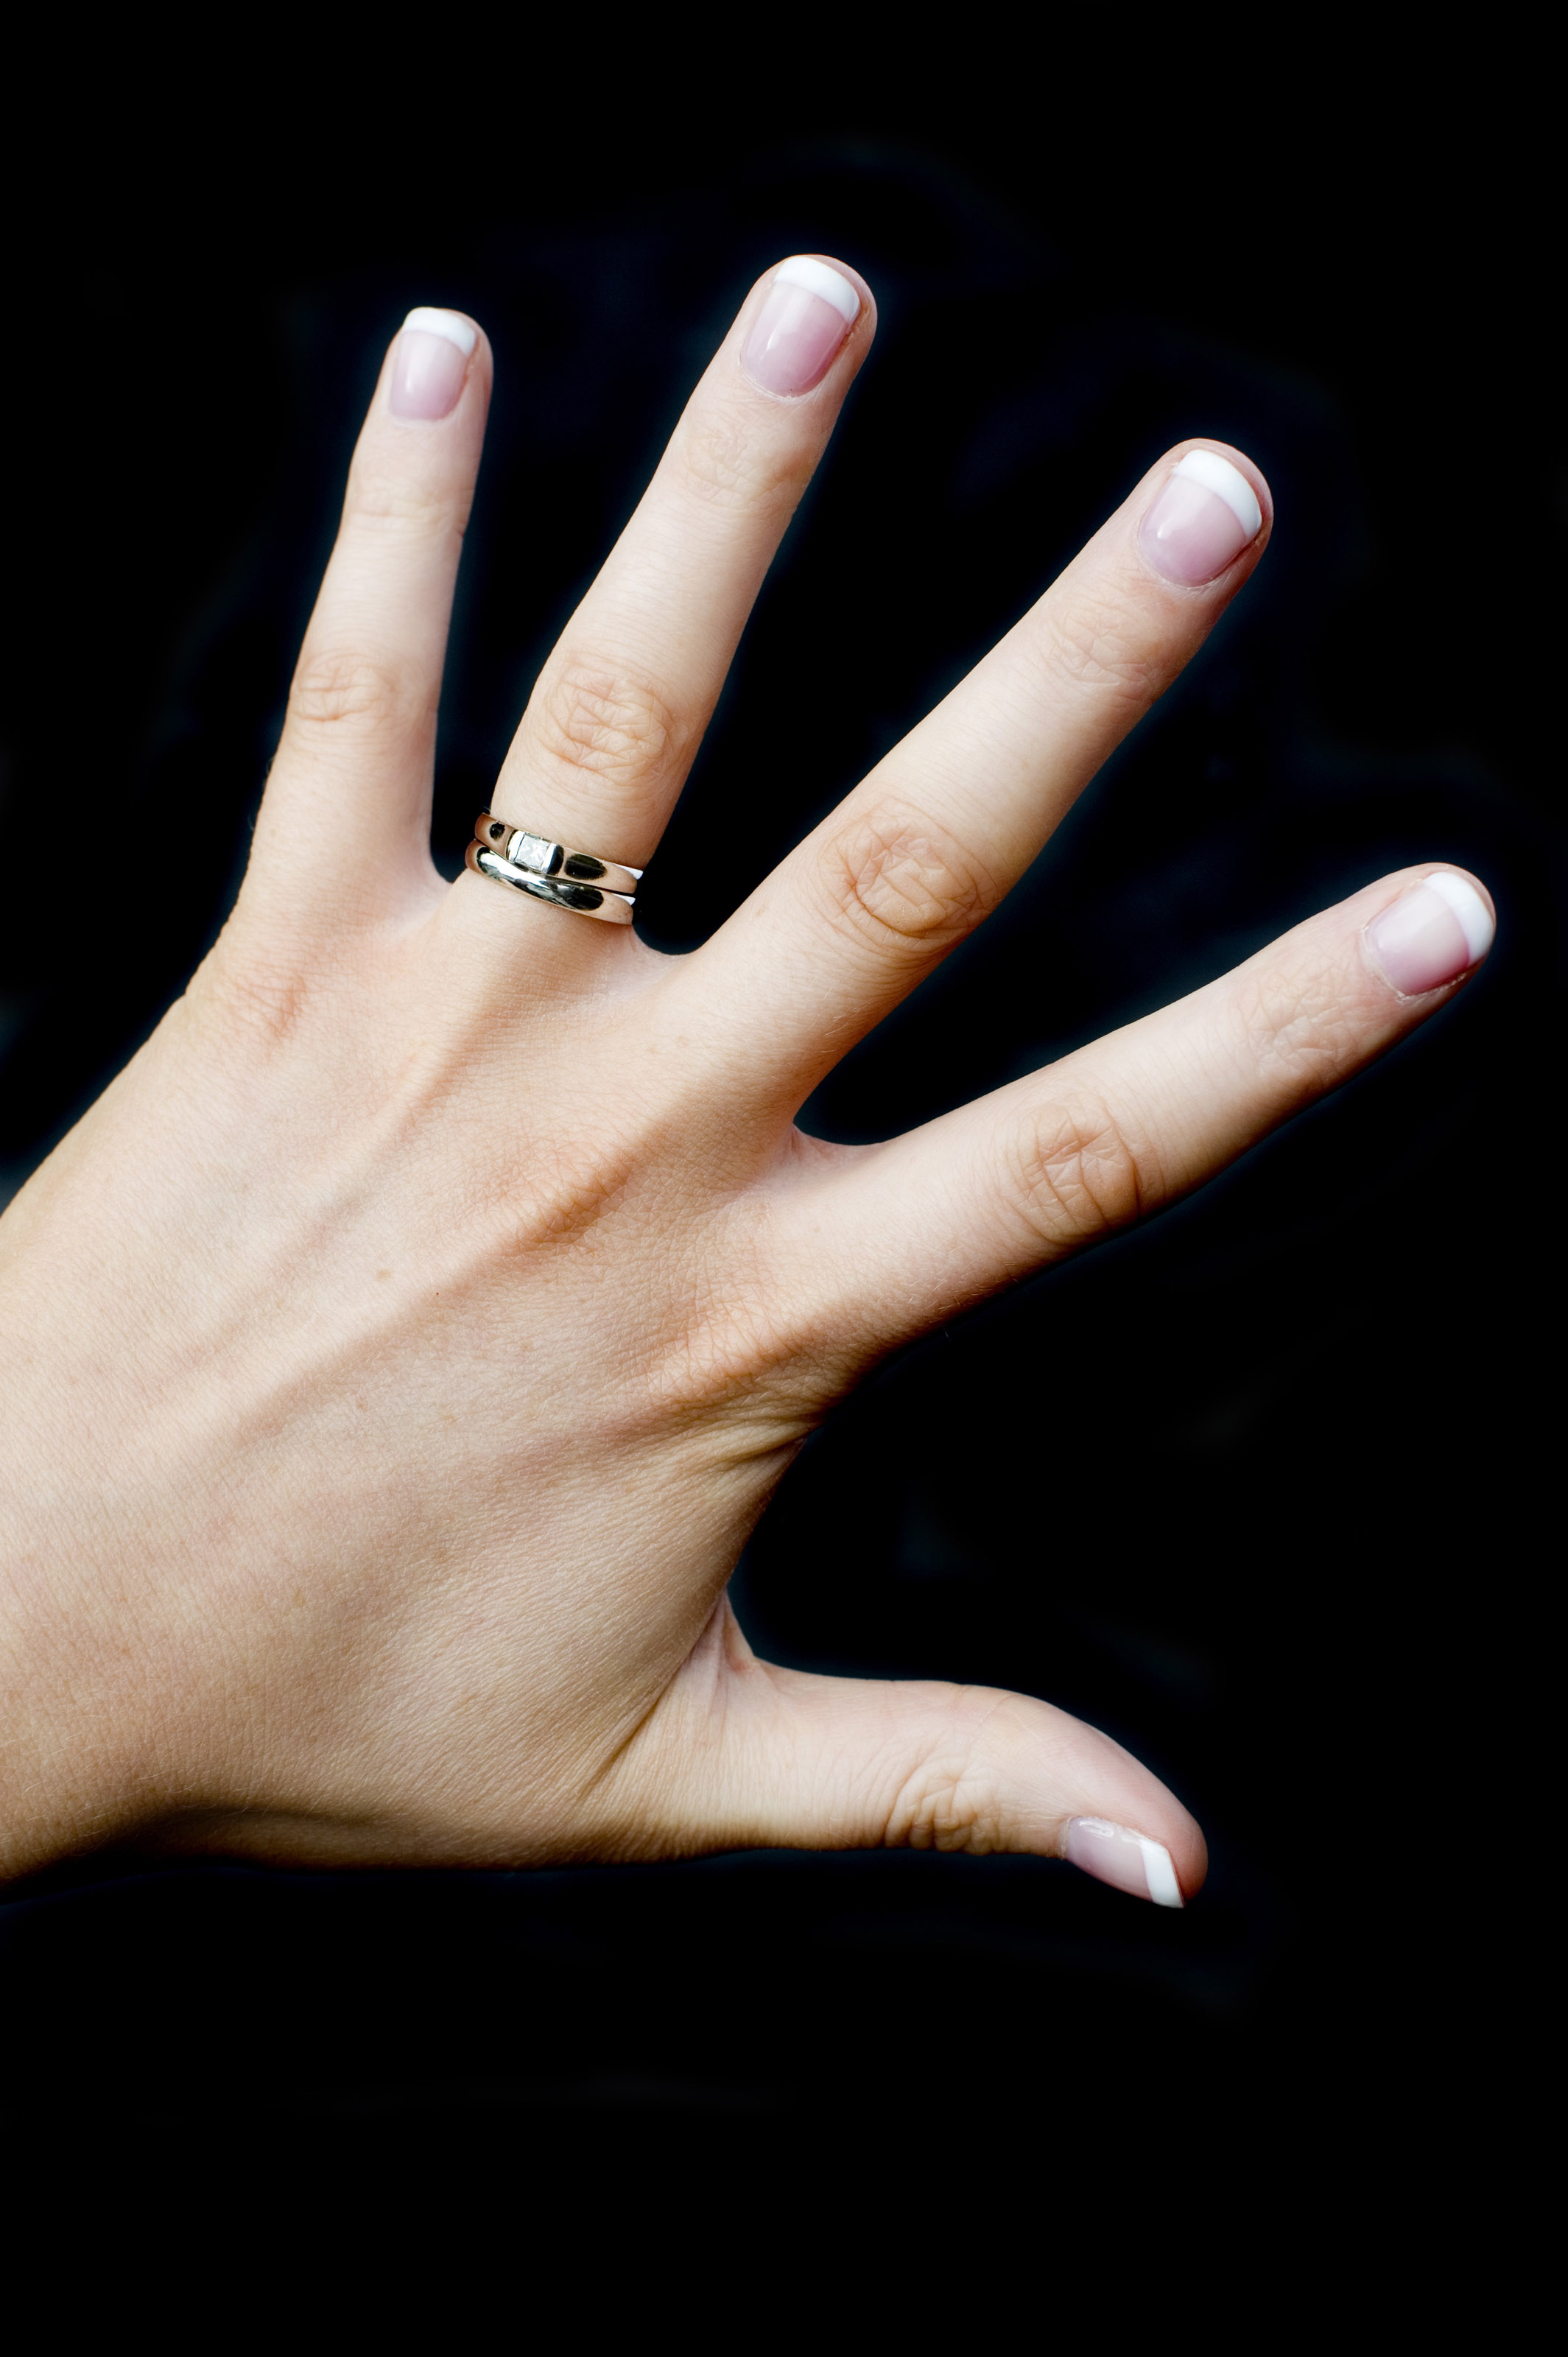 Cut Out On A Black Background, A Young Woman Wearing Wedding And Engagement  Rings